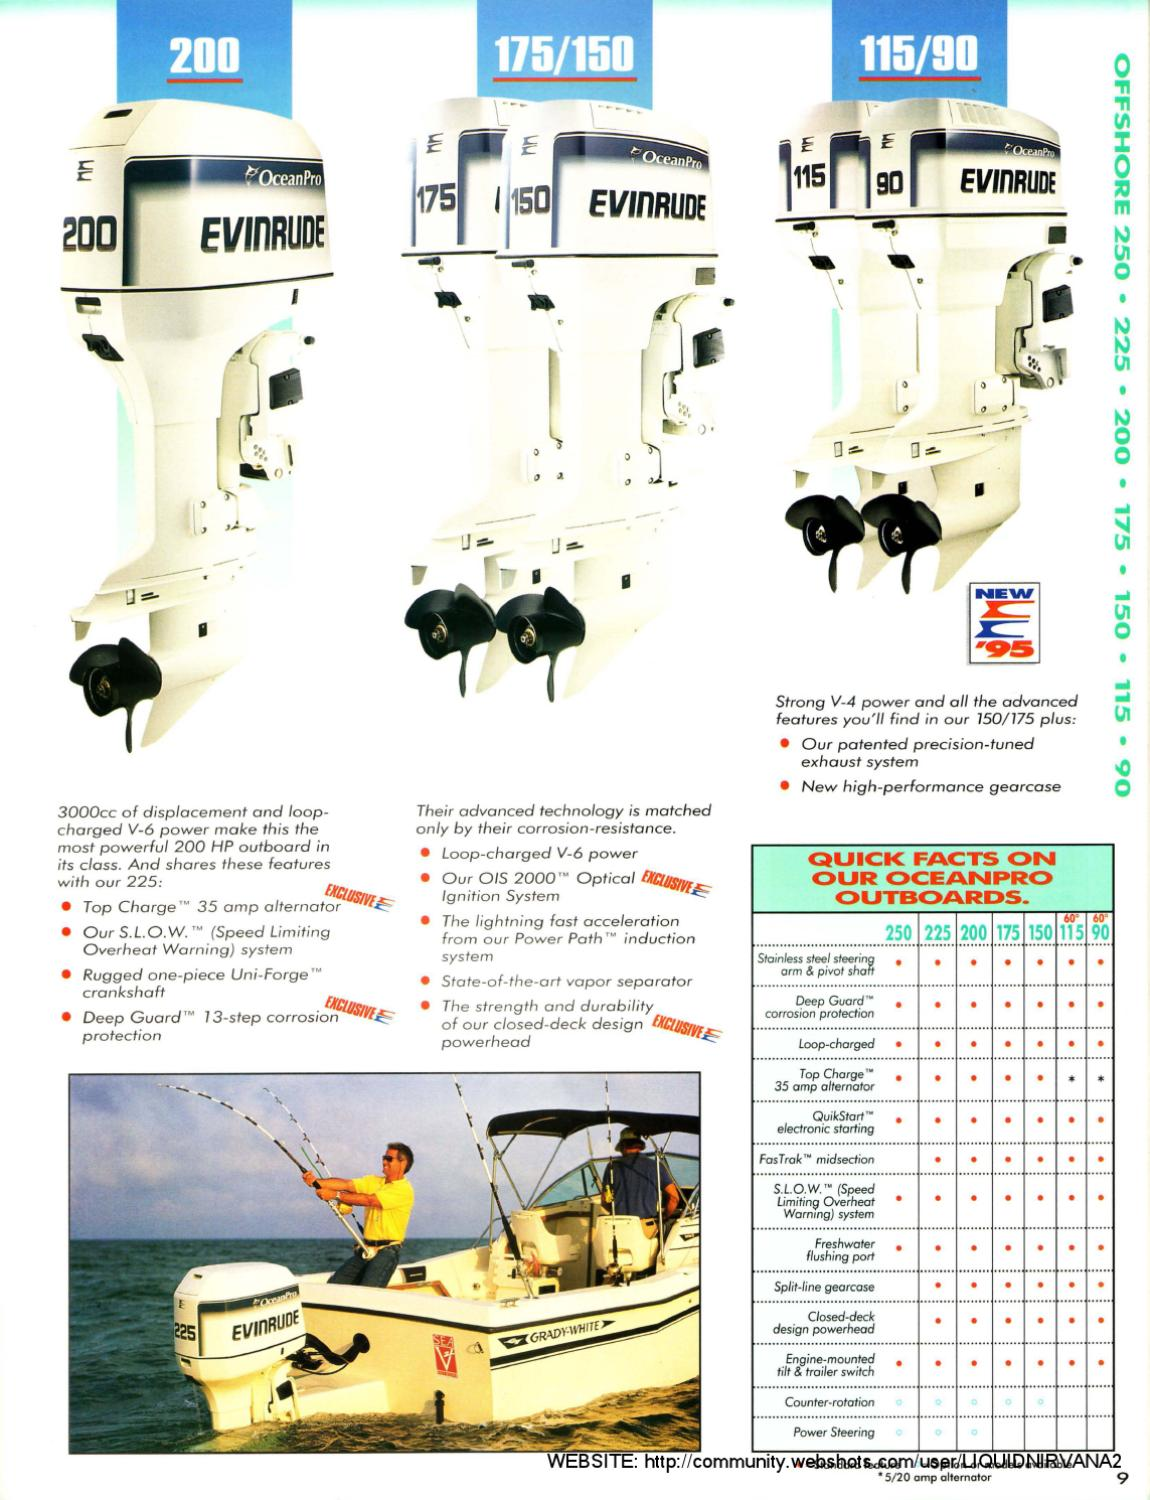 1995 - EVINRUDE Outboard Sales Brochure by Liquid Nirvana - issuu